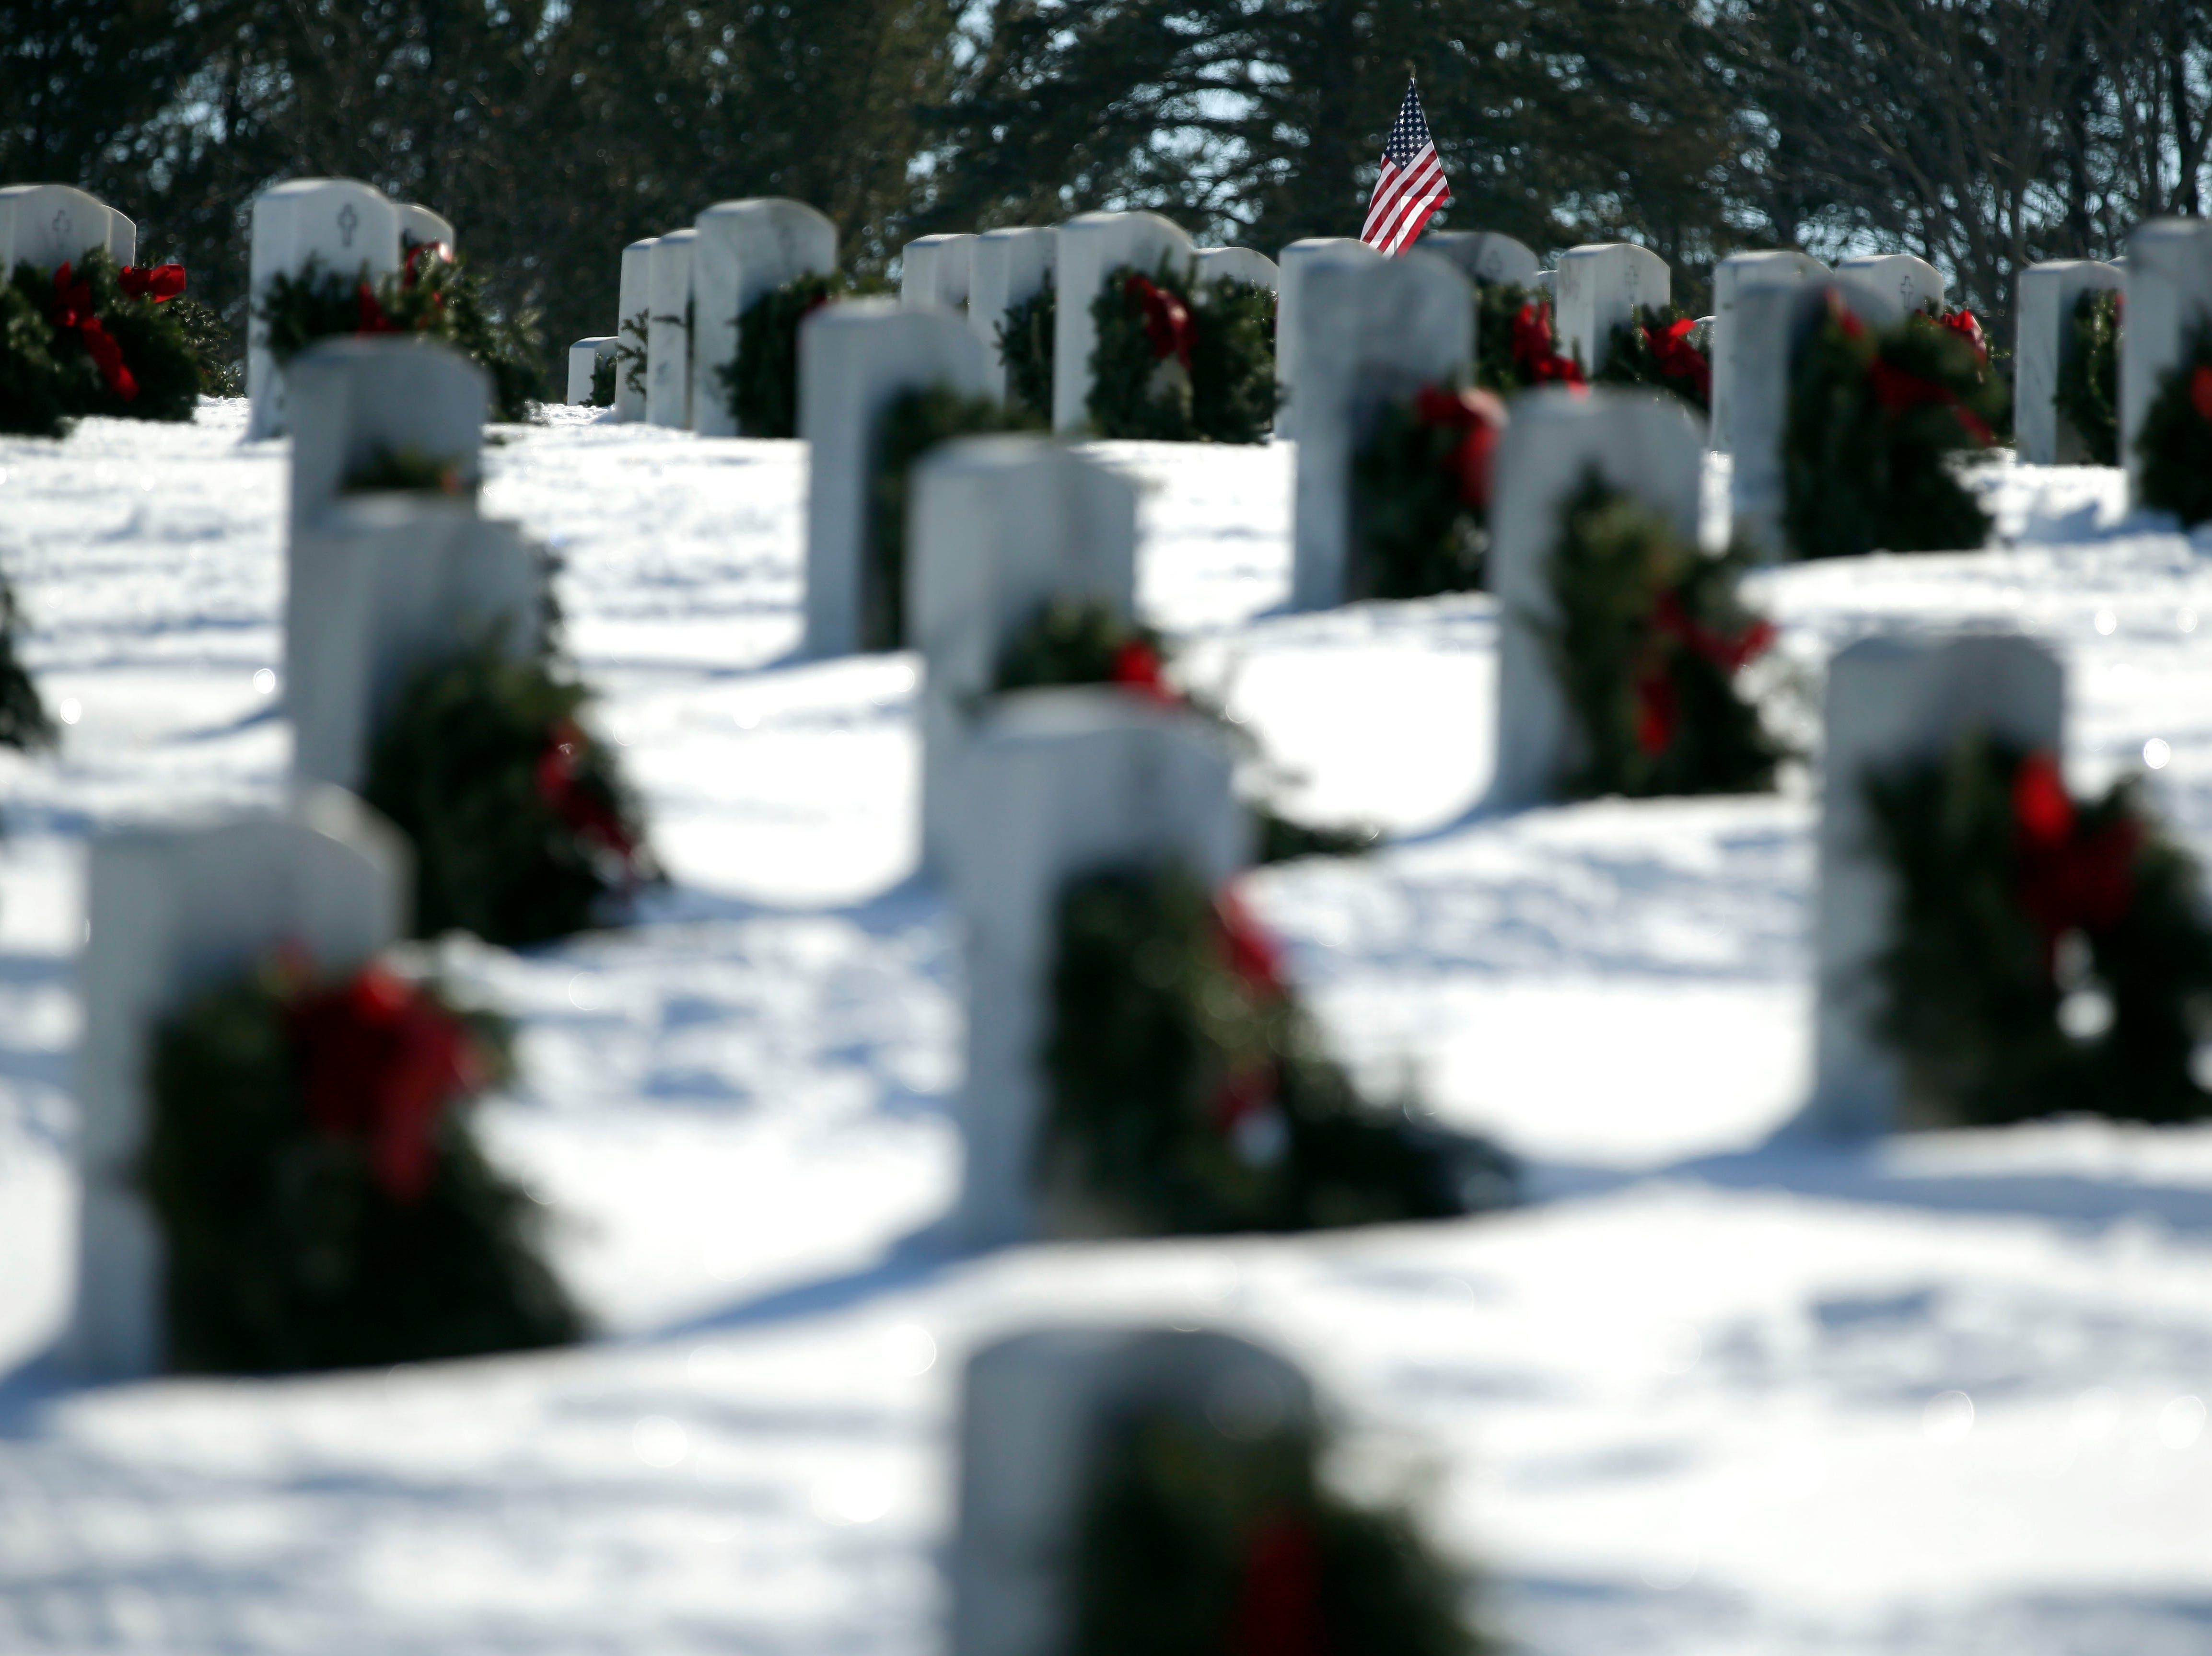 A flag stands among headstones decorated with wreaths after volunteers took part in Wreaths Across America Day at the Central Wisconsin Veterans Memorial Cemetery Saturday, December 15, 2018, in King, Wis. Over 7000 graves at King were honored with wreaths. Over 1400 other locations took part in the coordinated ceremony.